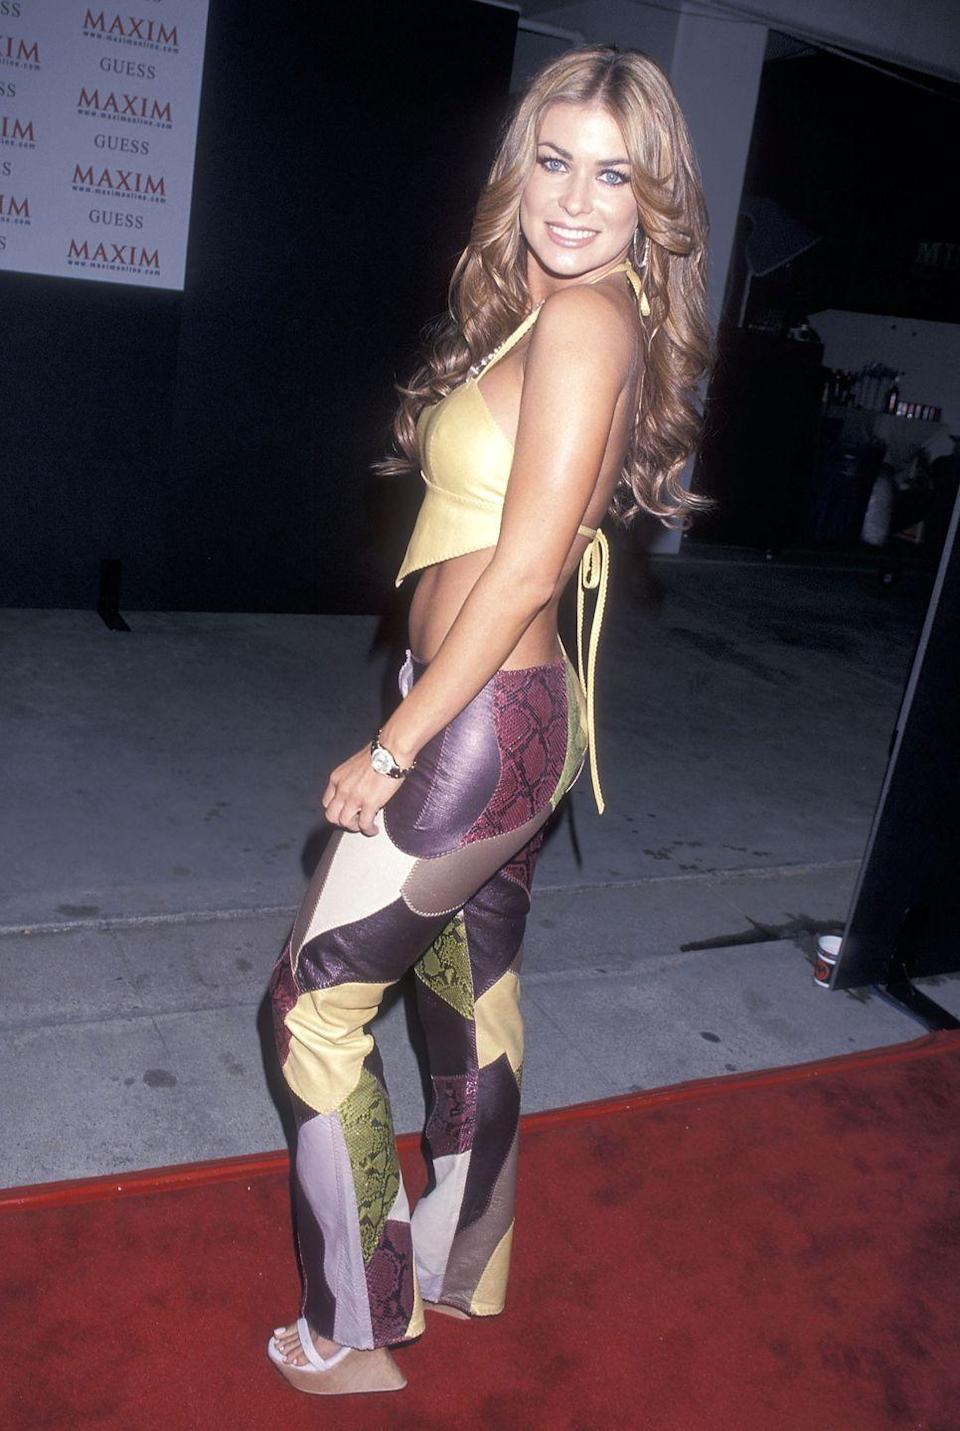 <p>Electra matched her halter top to one of the many colors in her patchwork pants at the opening of the Maxim Motel in LA.</p>